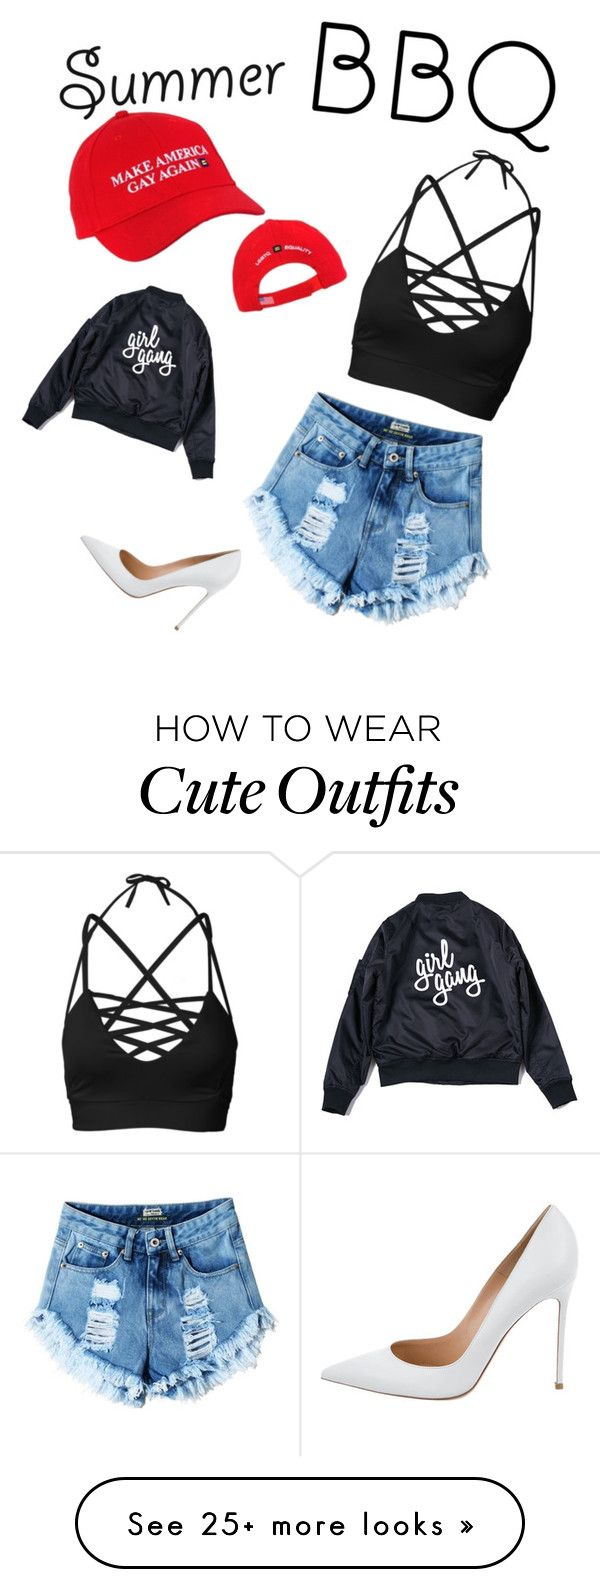 """""""Cute summer BBQ outfit"""" by lizzybizzy2o on Polyvore featuring Gianvito Rossi and summerbbq"""